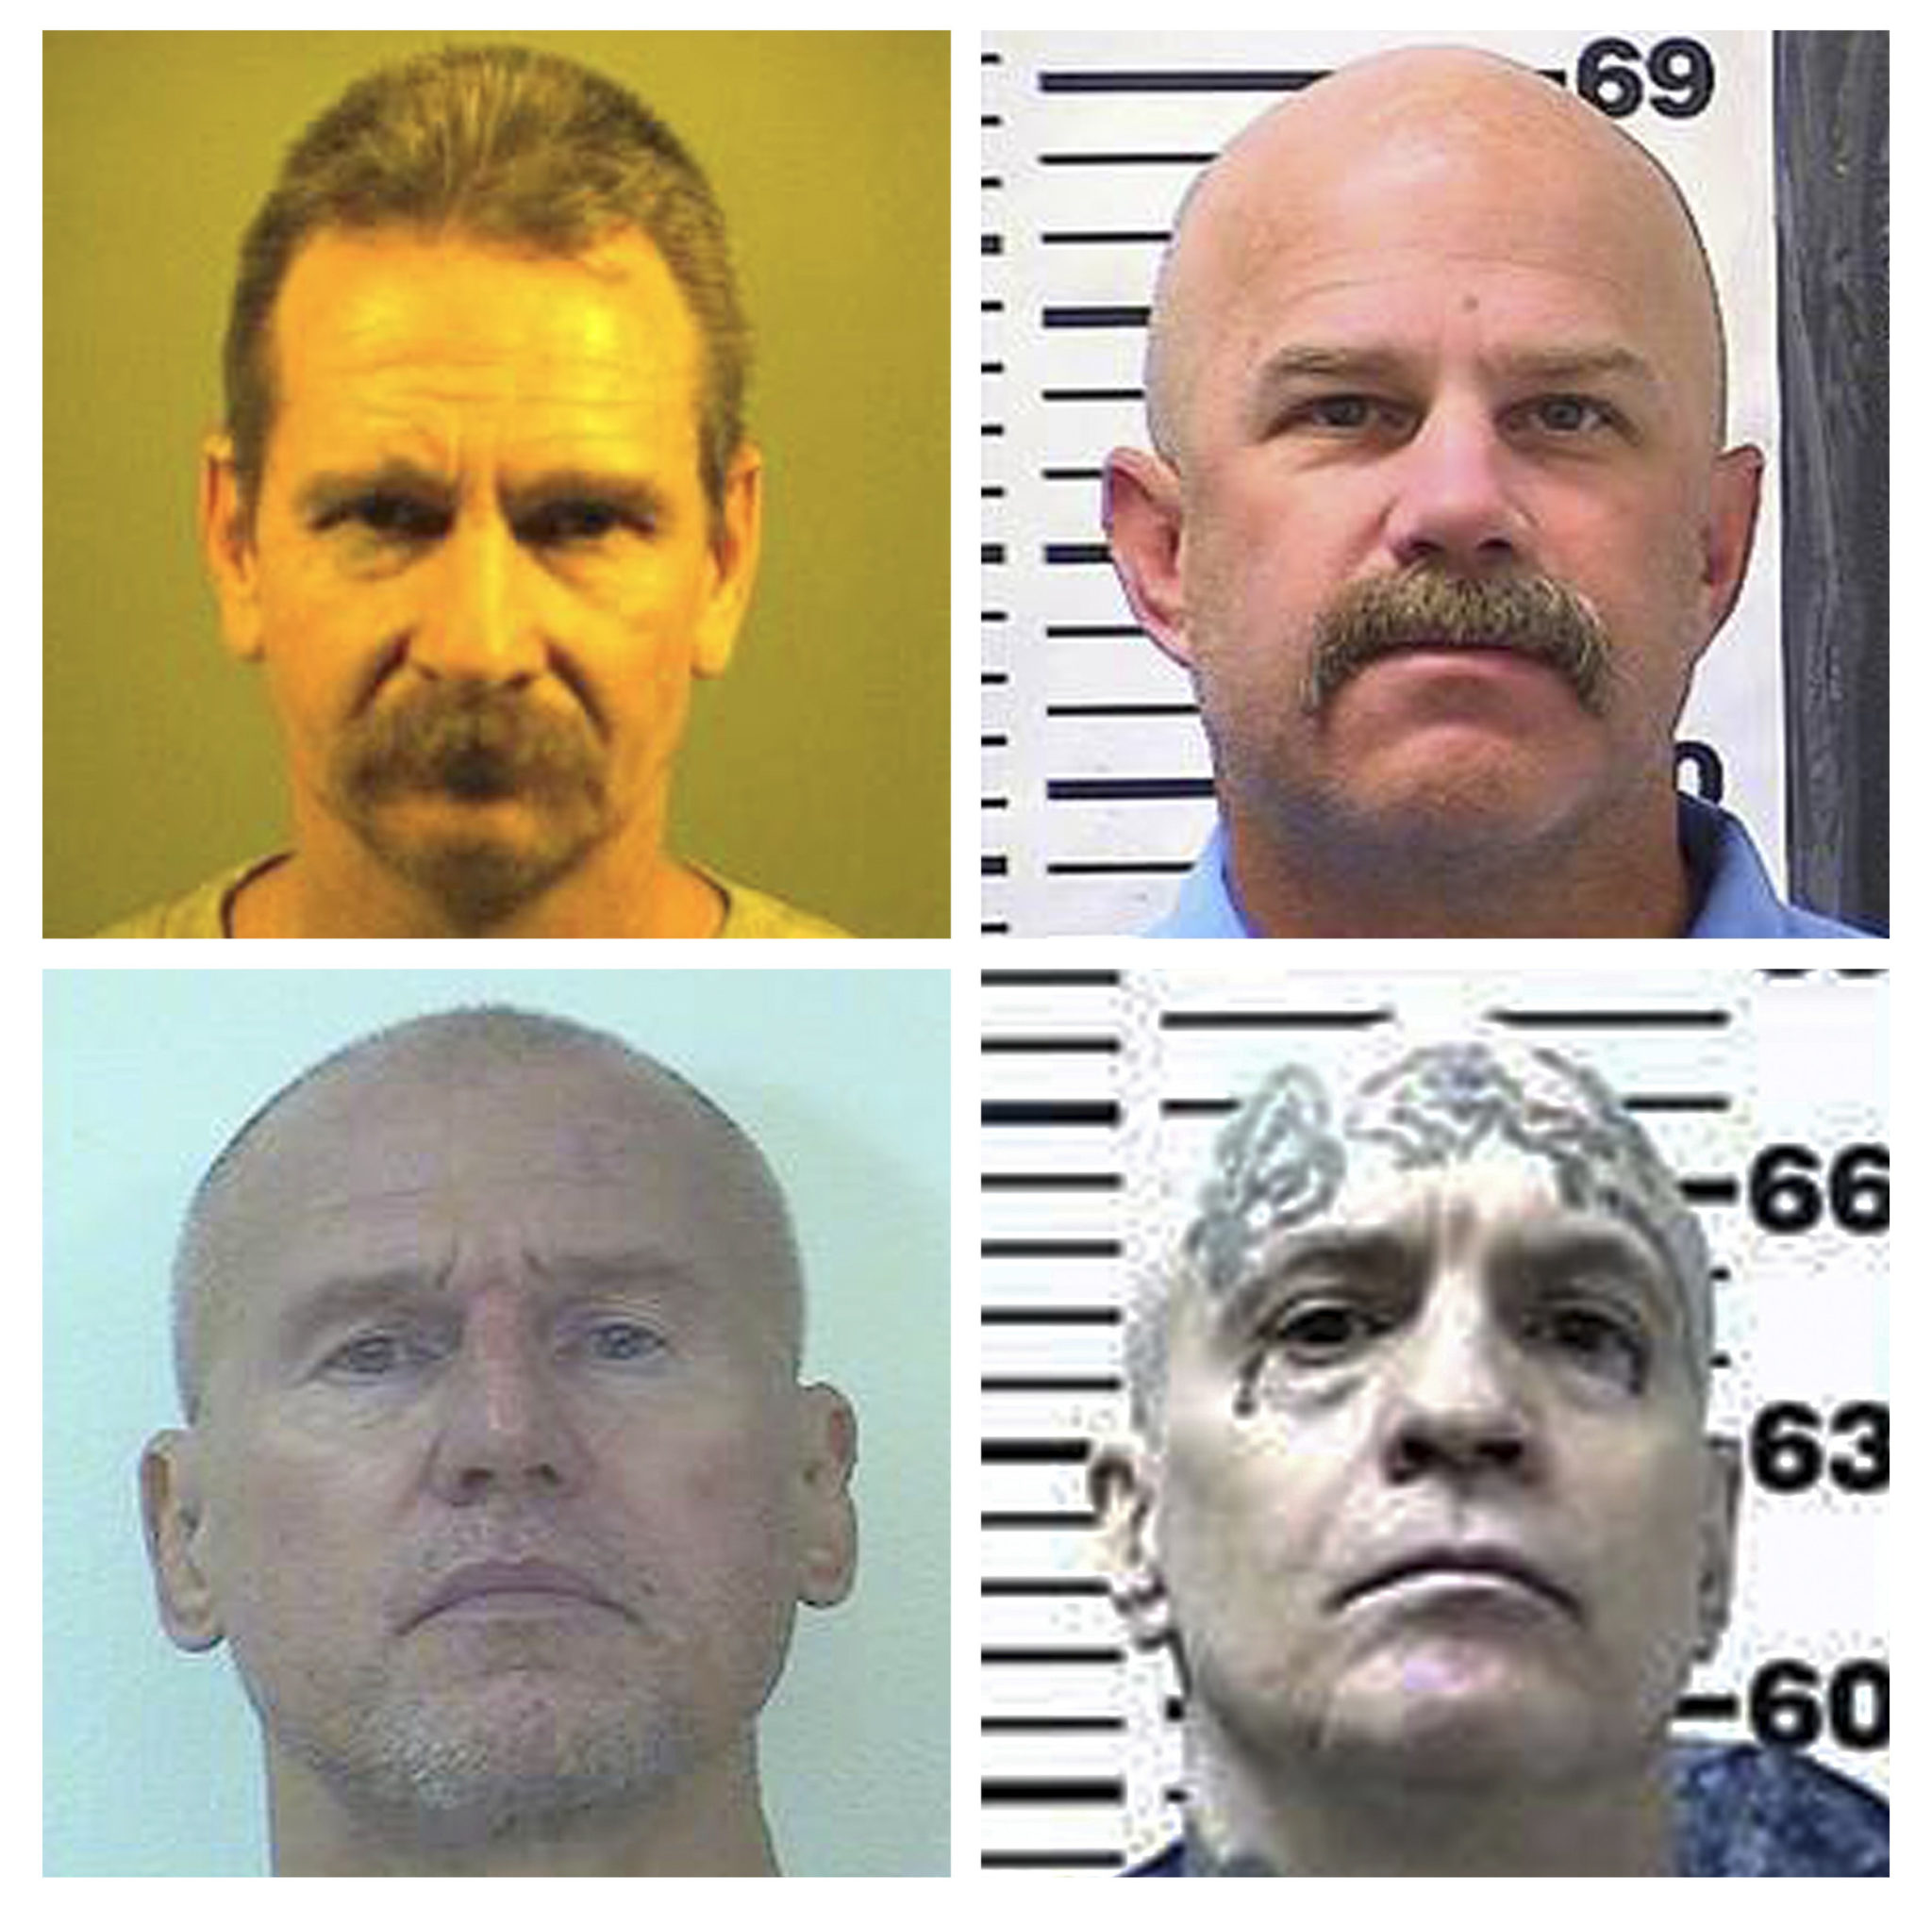 Leaders Of White Supremacist Prison Gang Charged In Killings